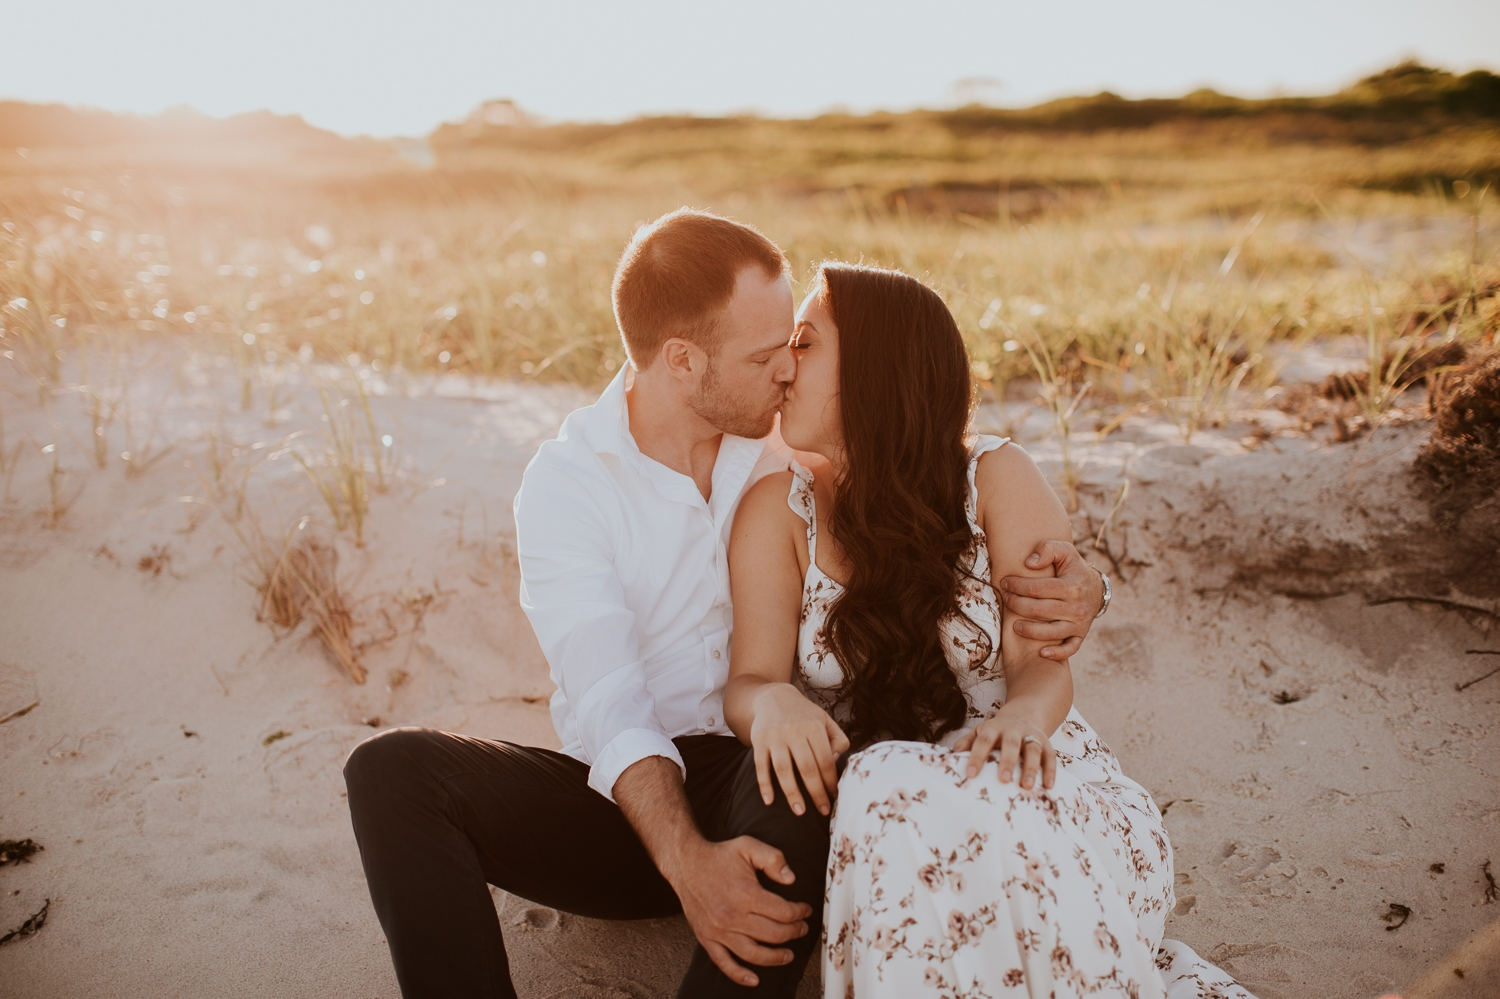 ho-hum-beach-boat-ride-engagement-photography-bellport-new-york 19.jpg